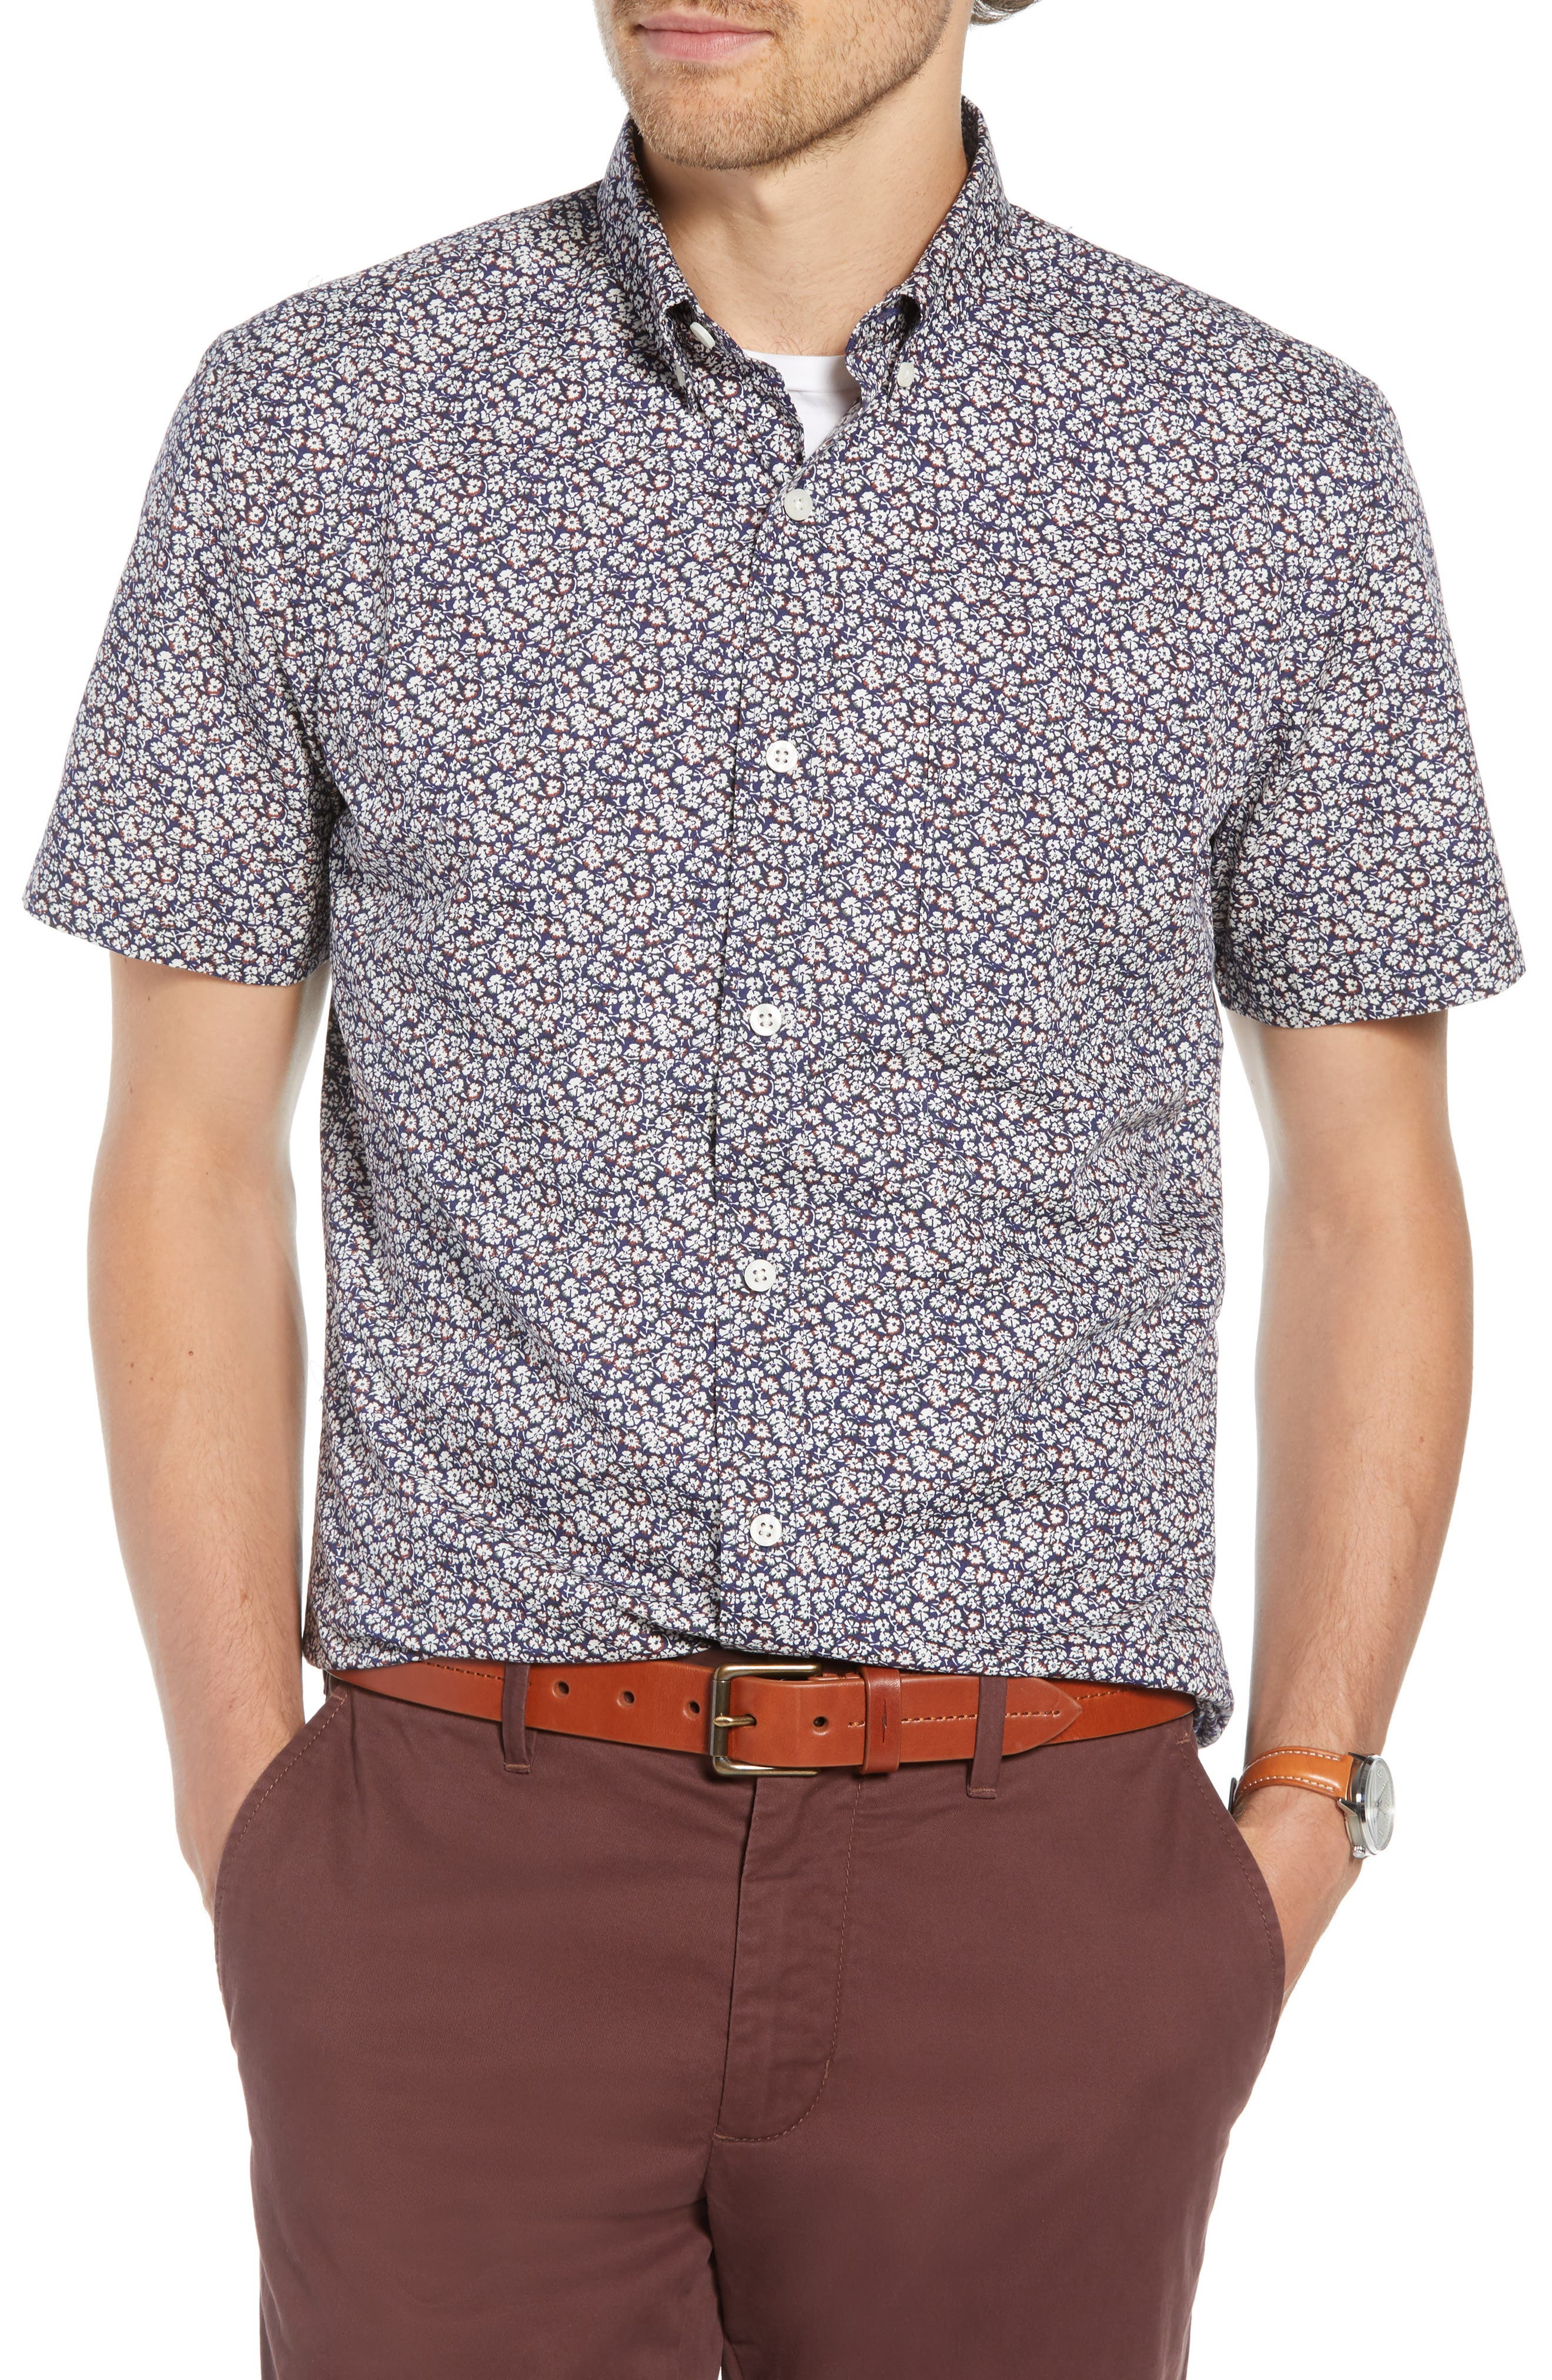 Micro Floral Print Sport Shirt,                             Main thumbnail 1, color,                             NAVY CREAM MICRO FLOWER